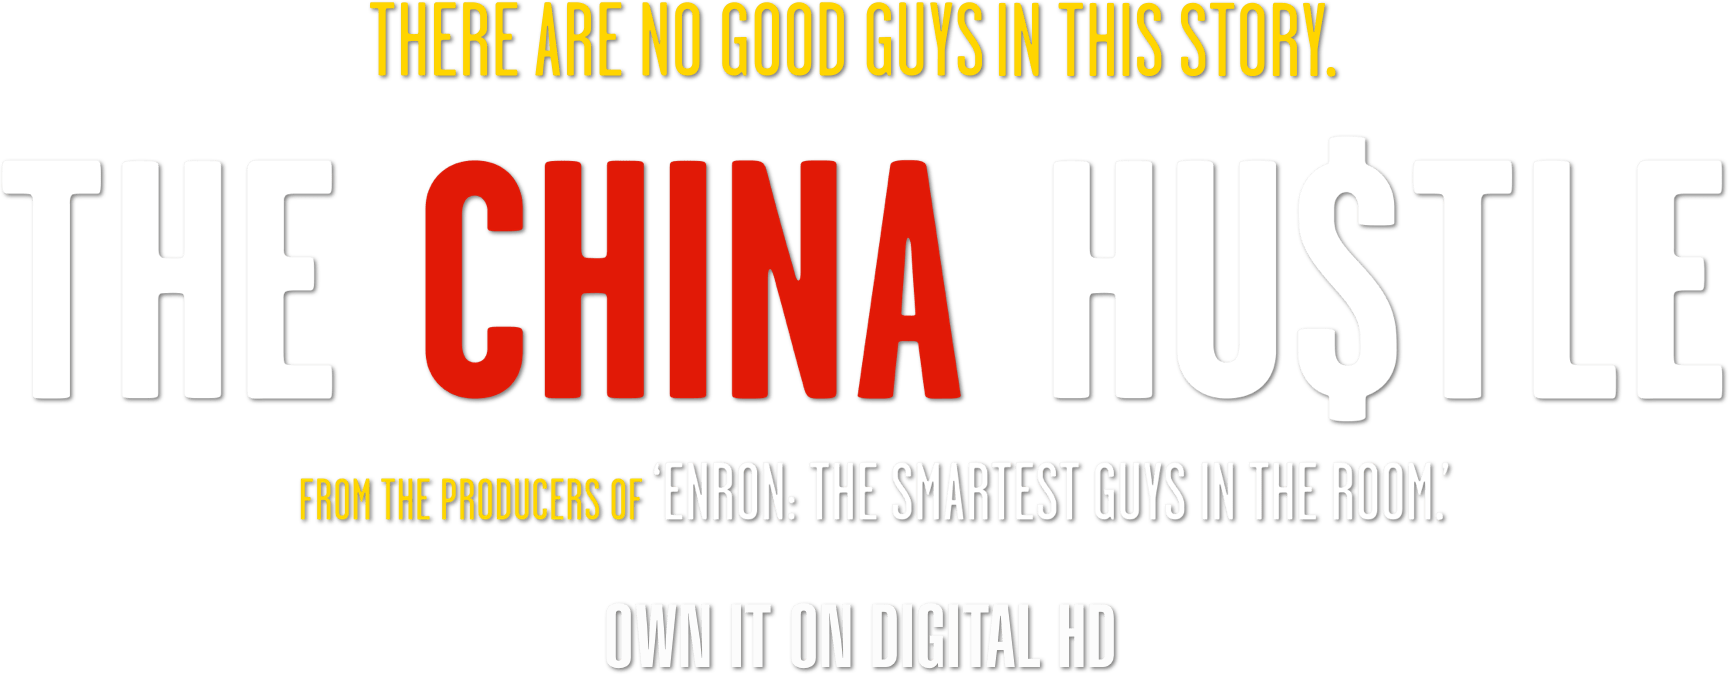 The China Hustle: Story | Magnolia Pictures